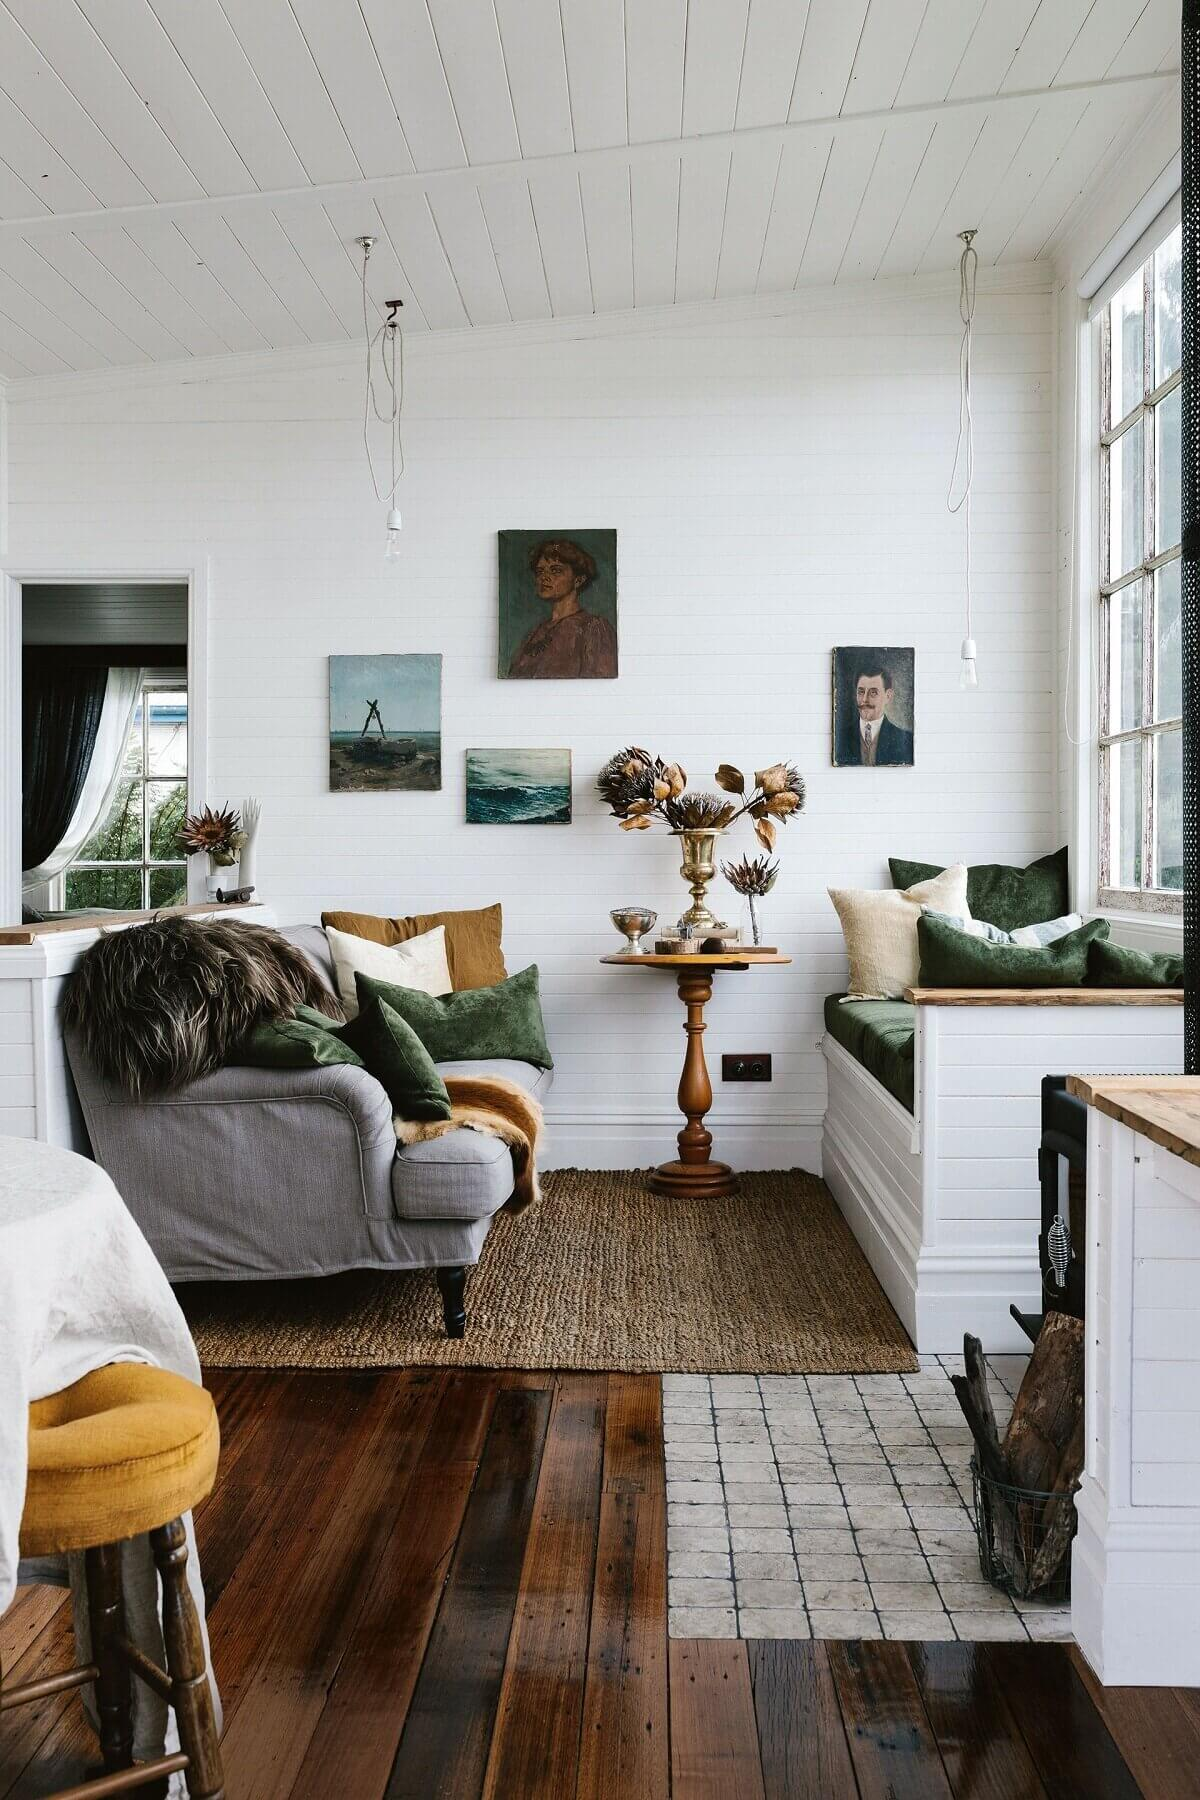 captains-rest-vintage-window-seat-stylish-holiday-cottages-tasmania-the-nordroom